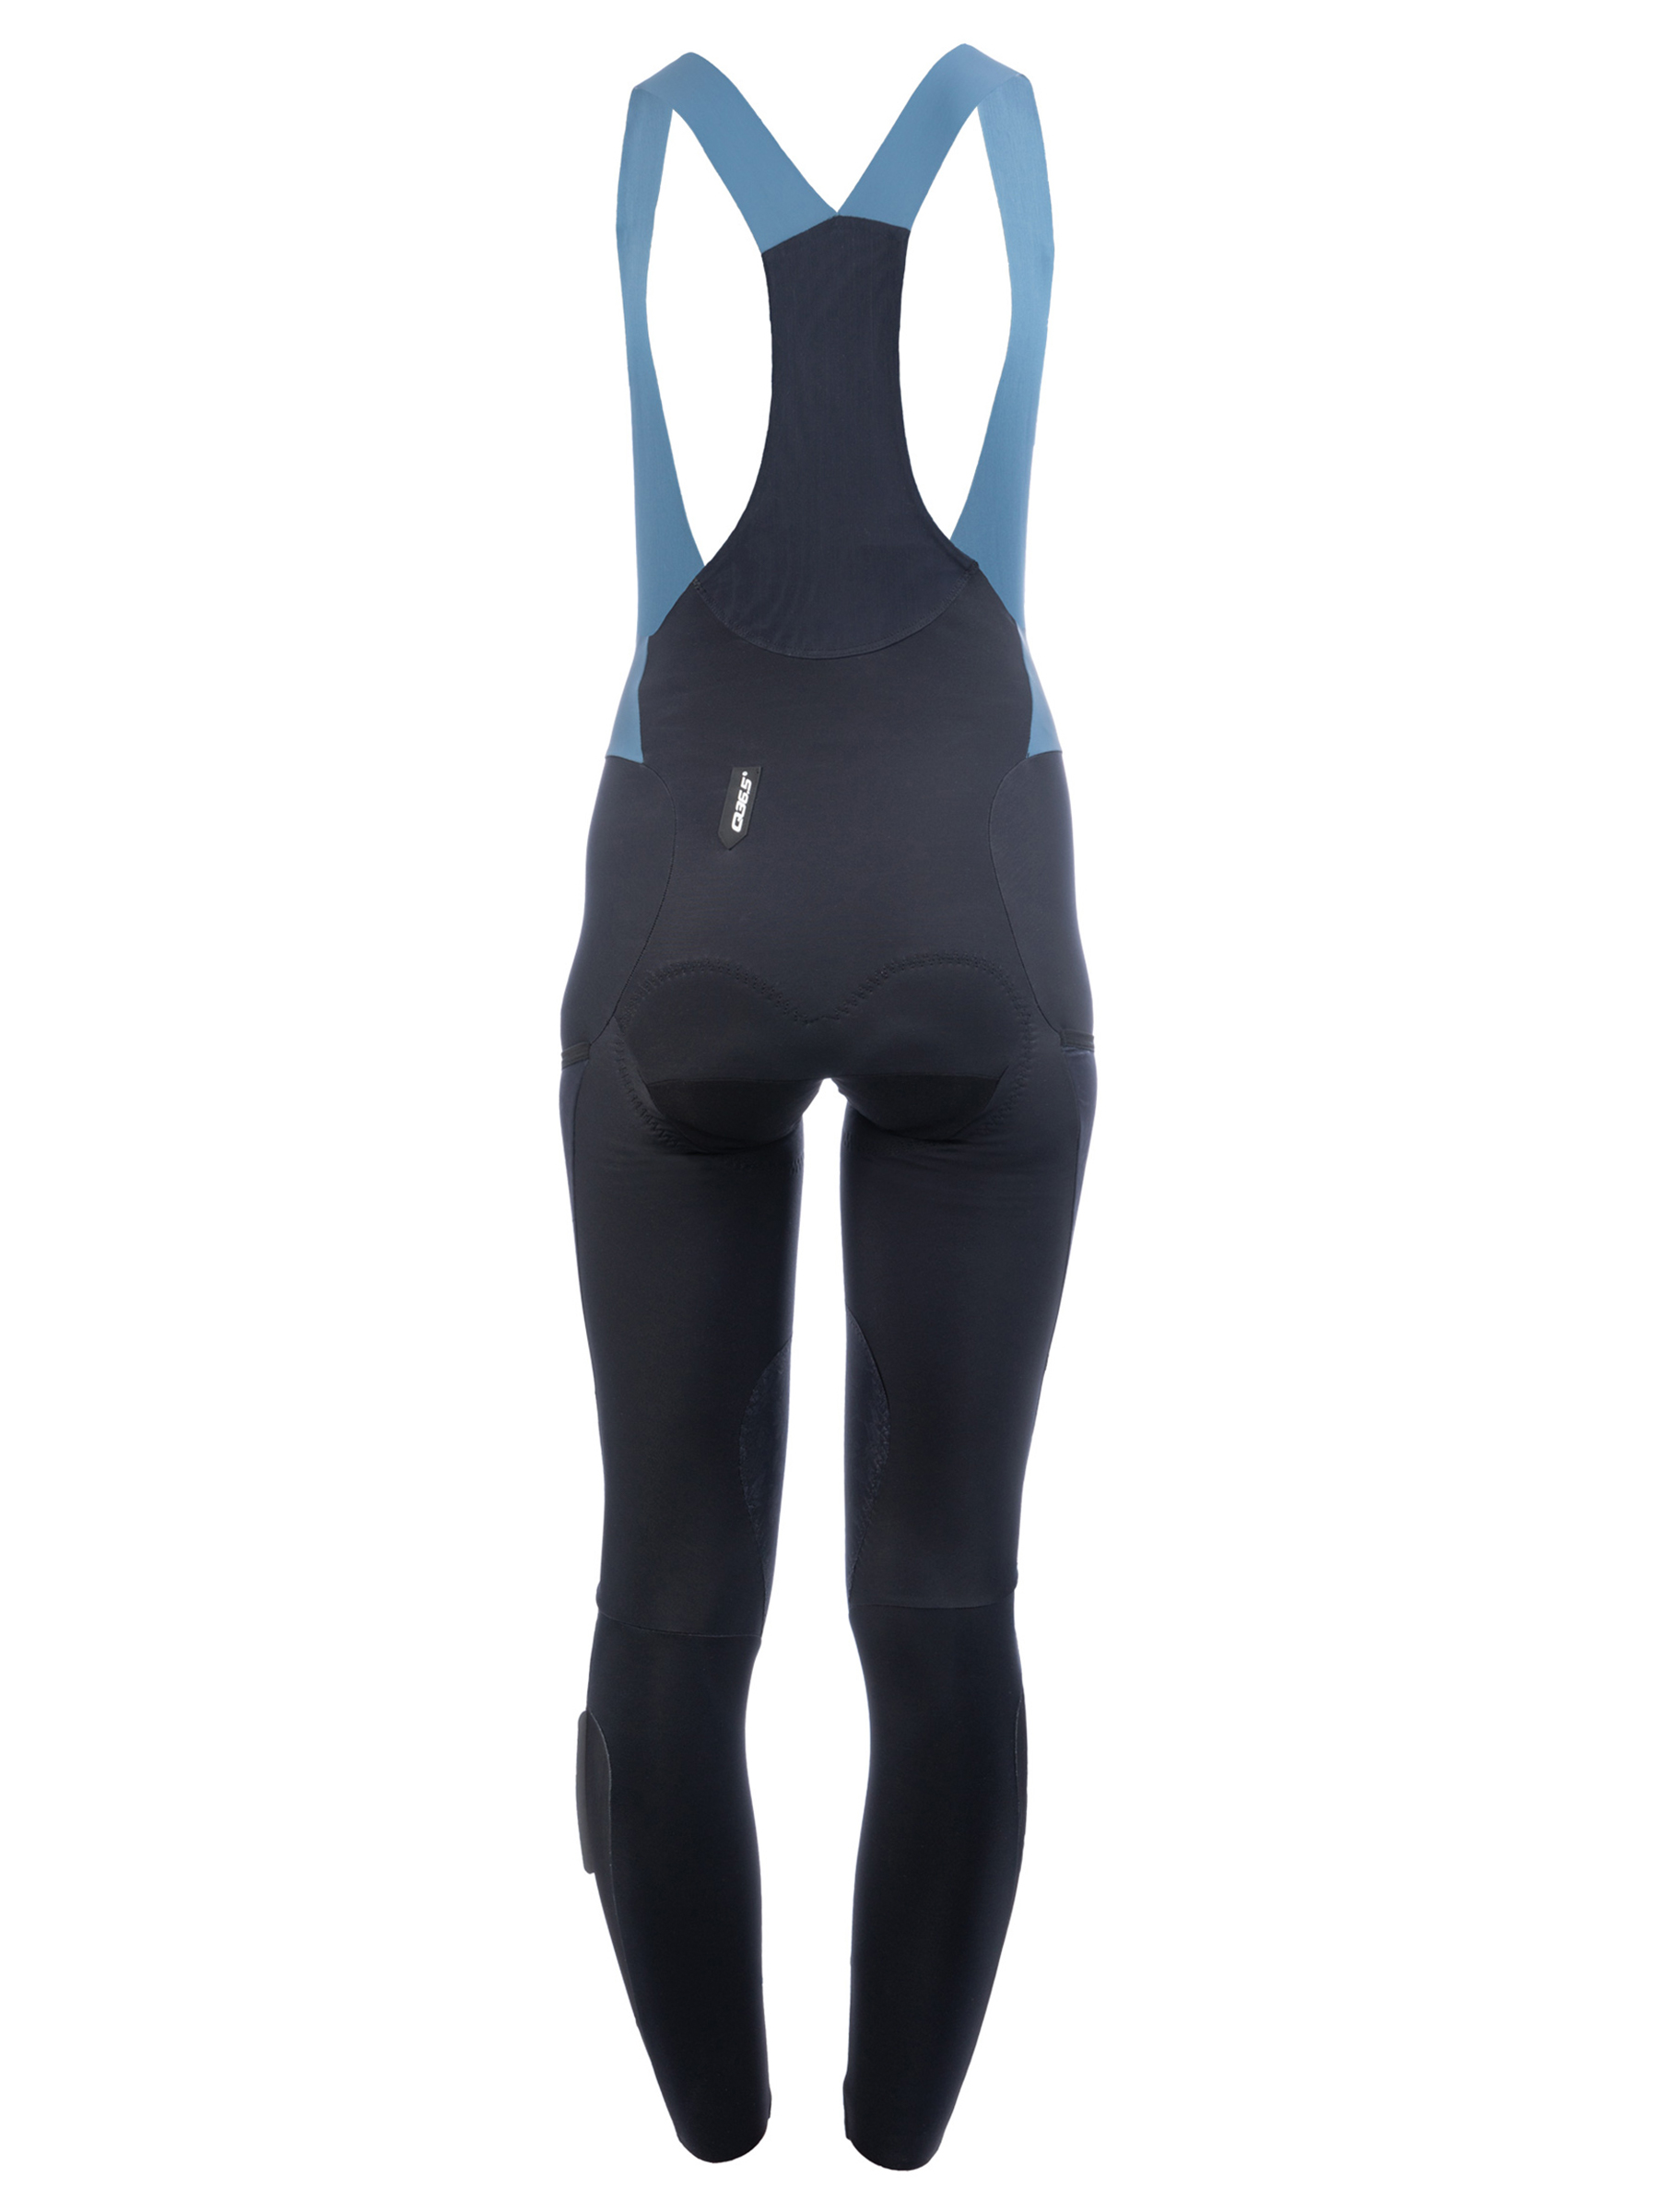 Adventure Women's Winter Bib Tights black